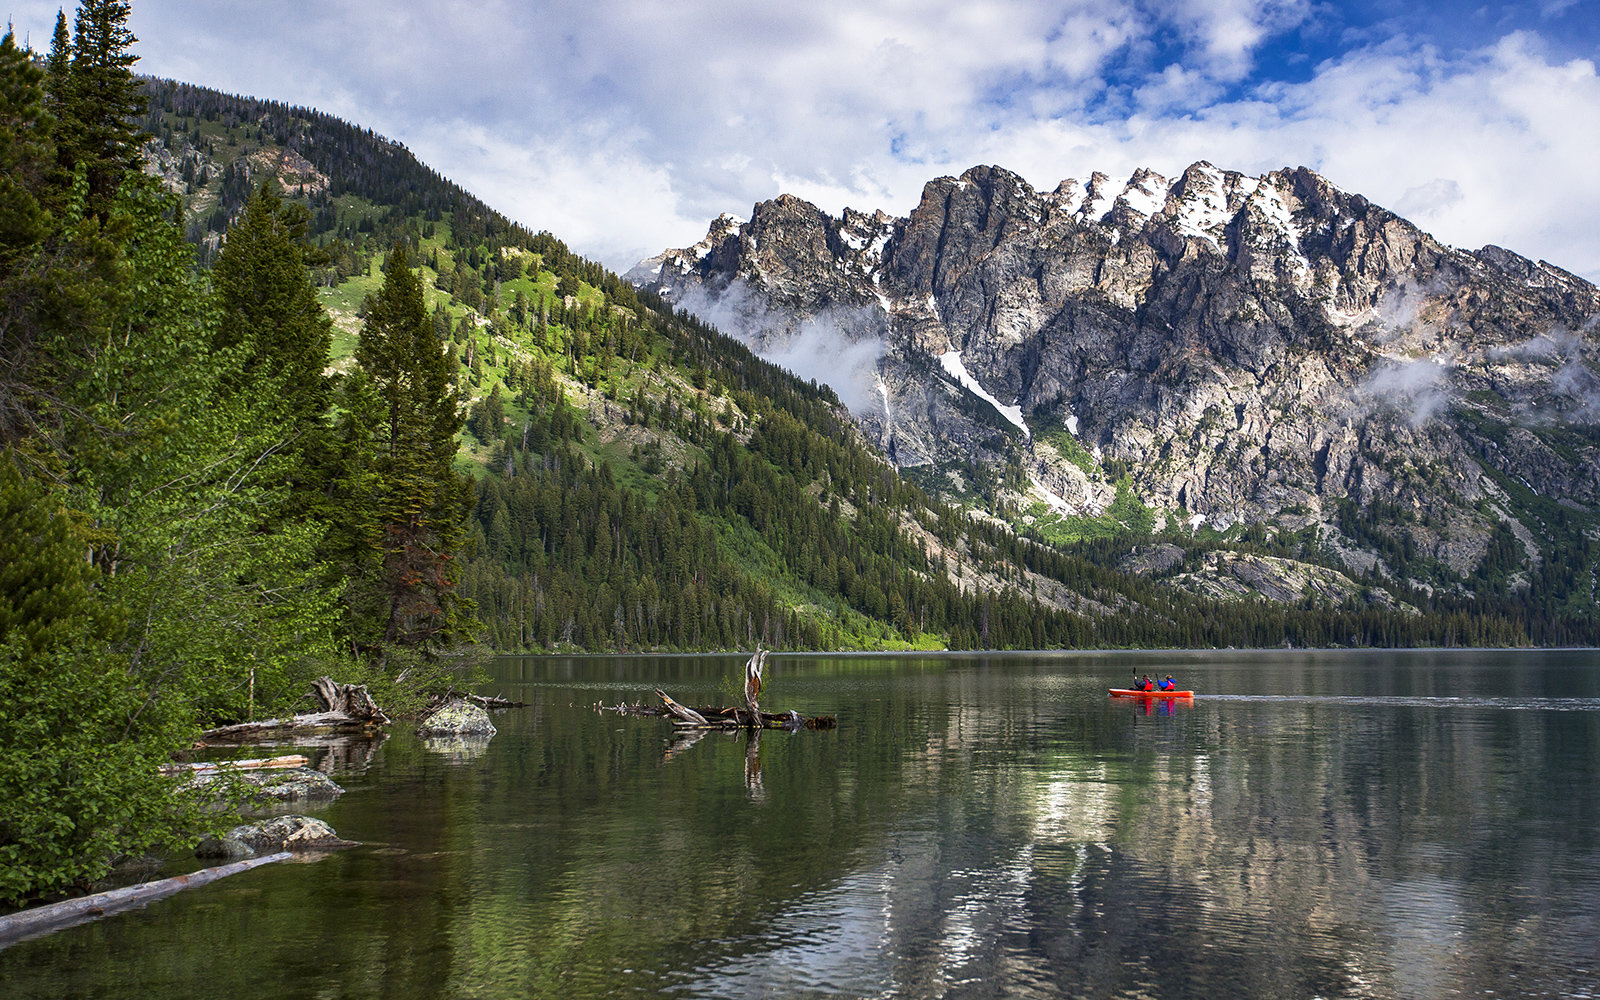 Taggart Lake and Bradley Lake in Grand Teton National Park